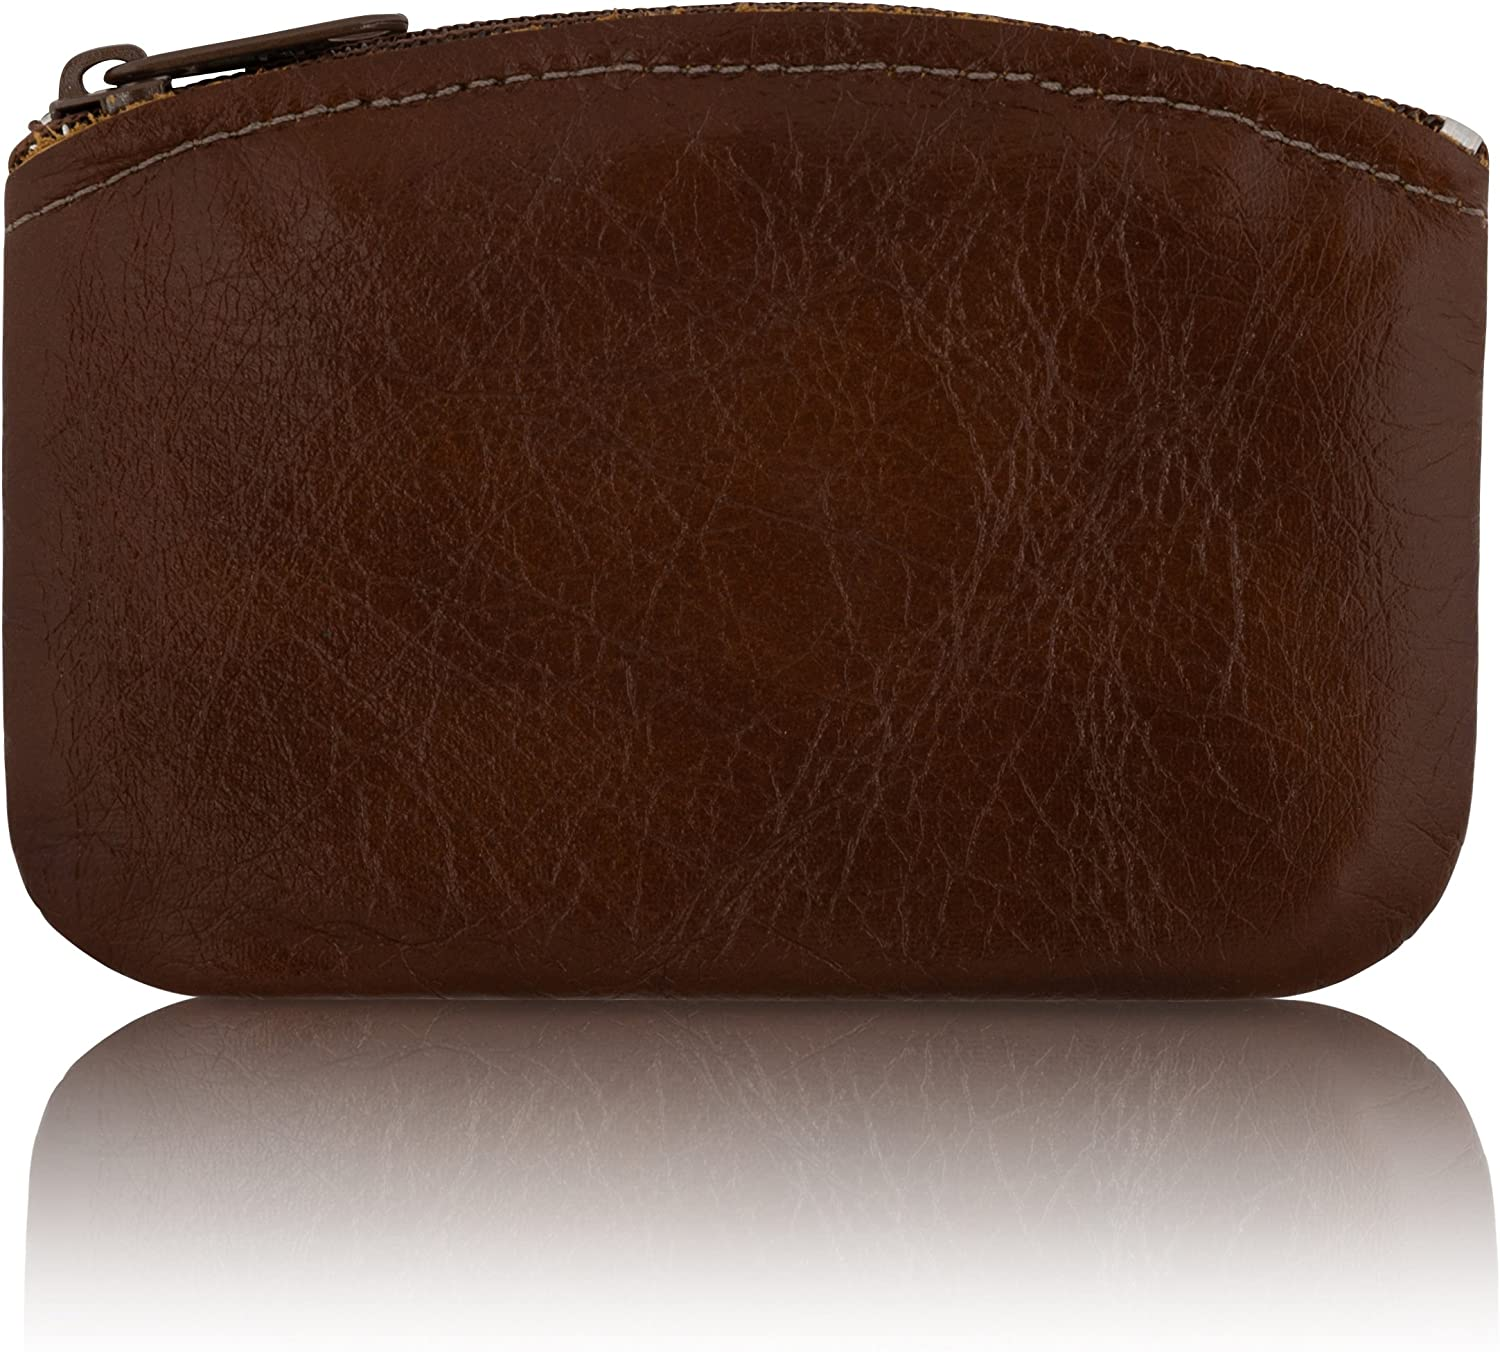 Change holder For Men//Woman made with Genuine Leather Zippered Coin Pouch Coin Purse